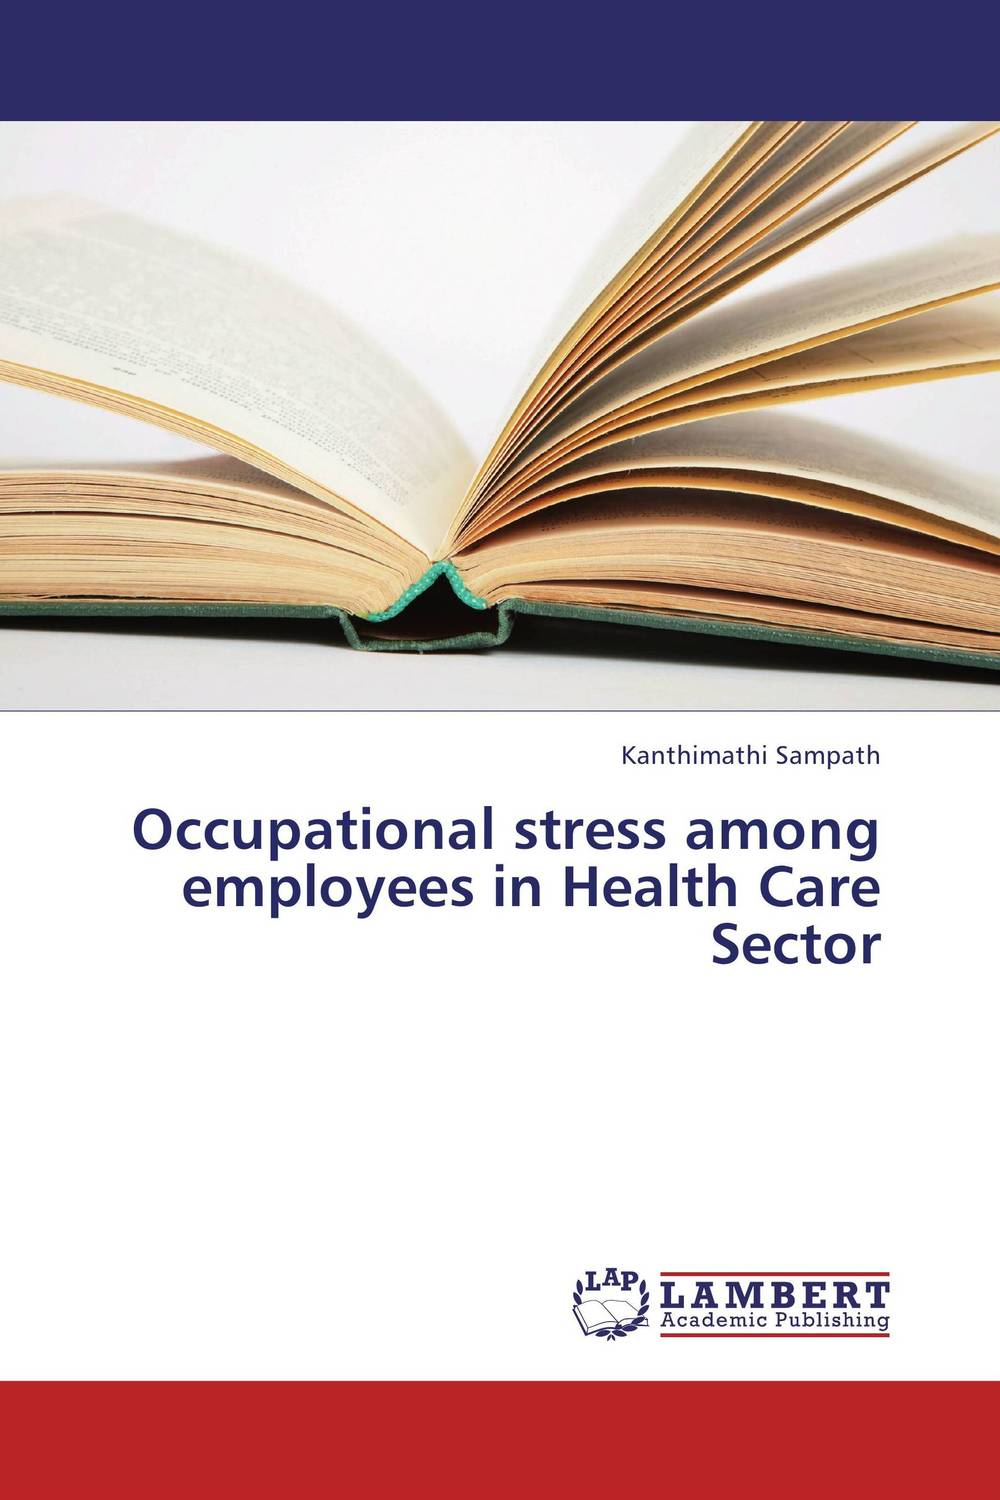 Occupational stress among employees in Health Care Sector kanthimathi sampath occupational stress among employees in health care sector